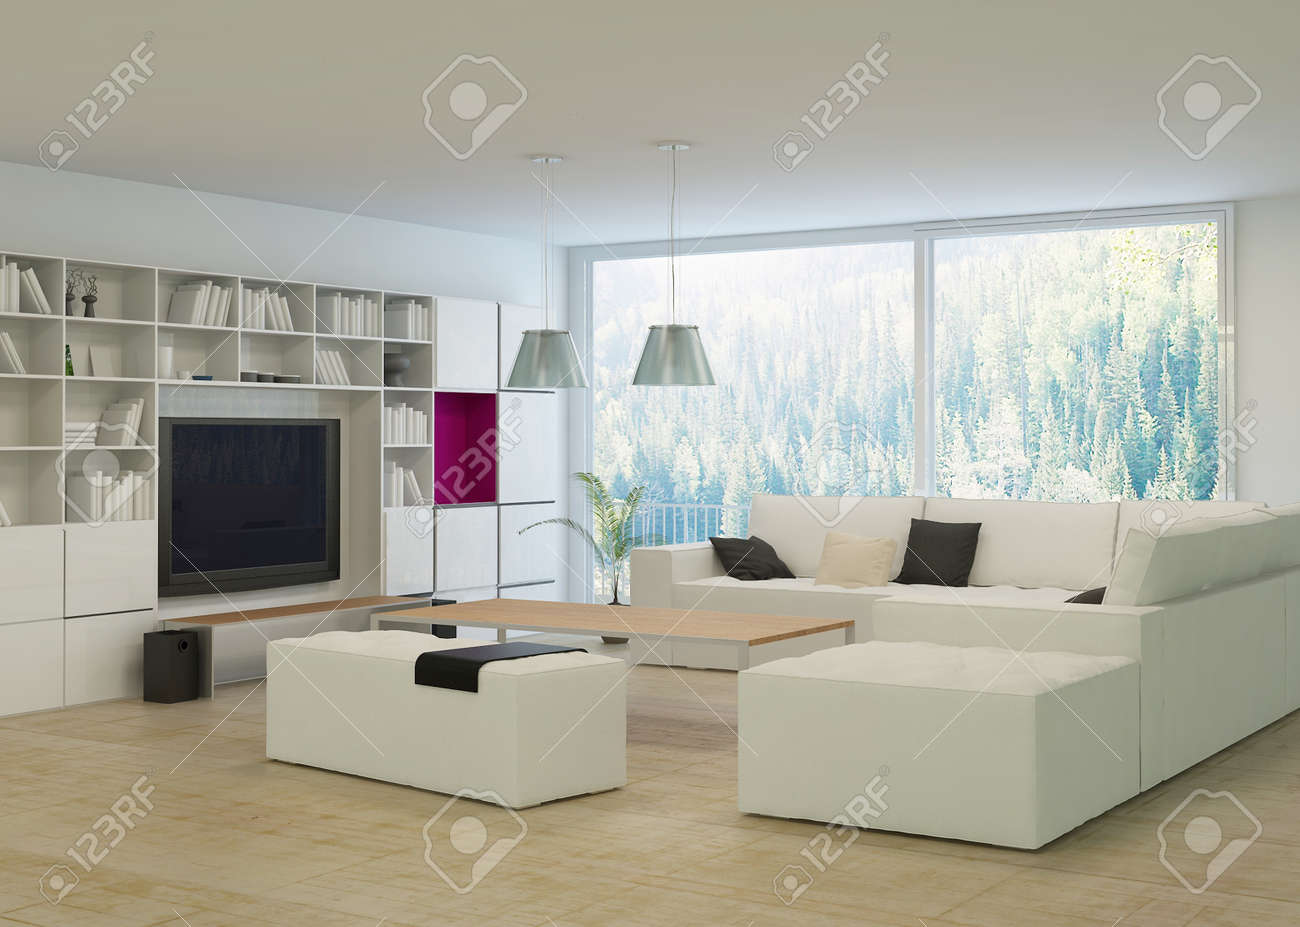 Modern Living Room With Beige Couch And White Cabinet Stock Photo ...